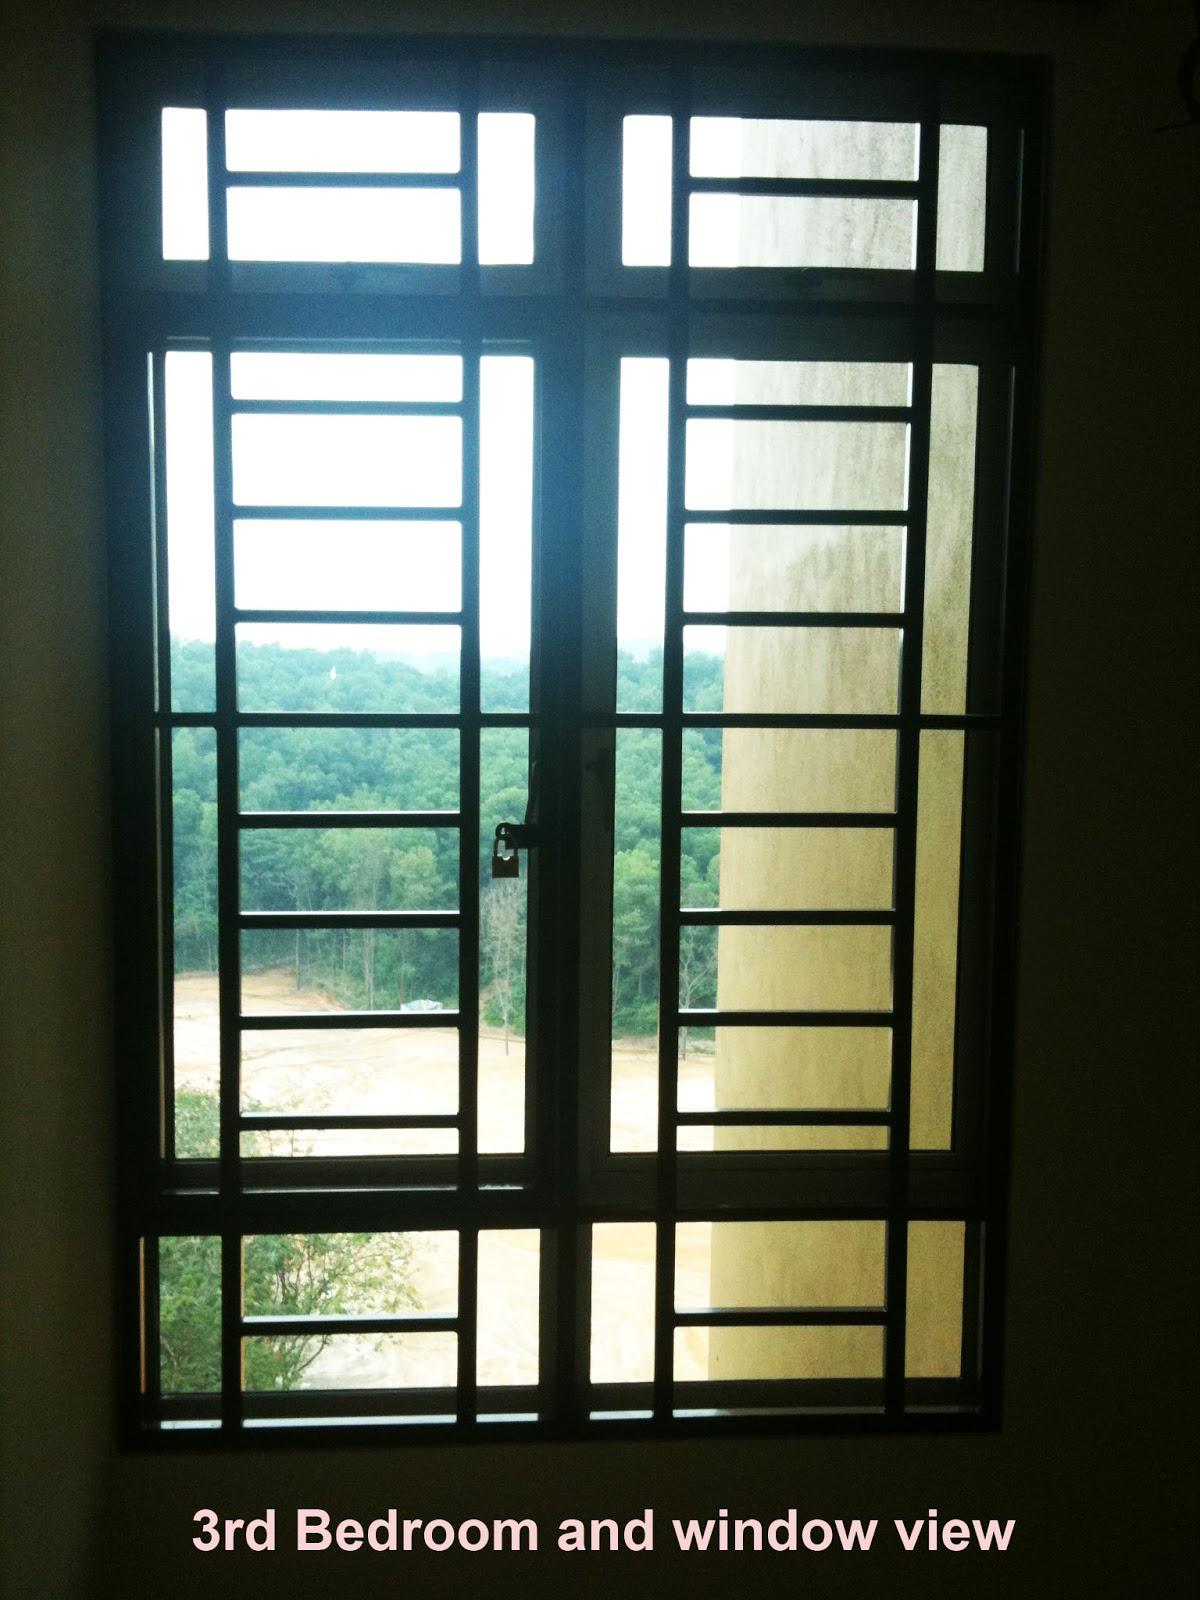 28 modern window grill design malaysia window grill in malaysia joy studio design gallery - Modern window grills design ...